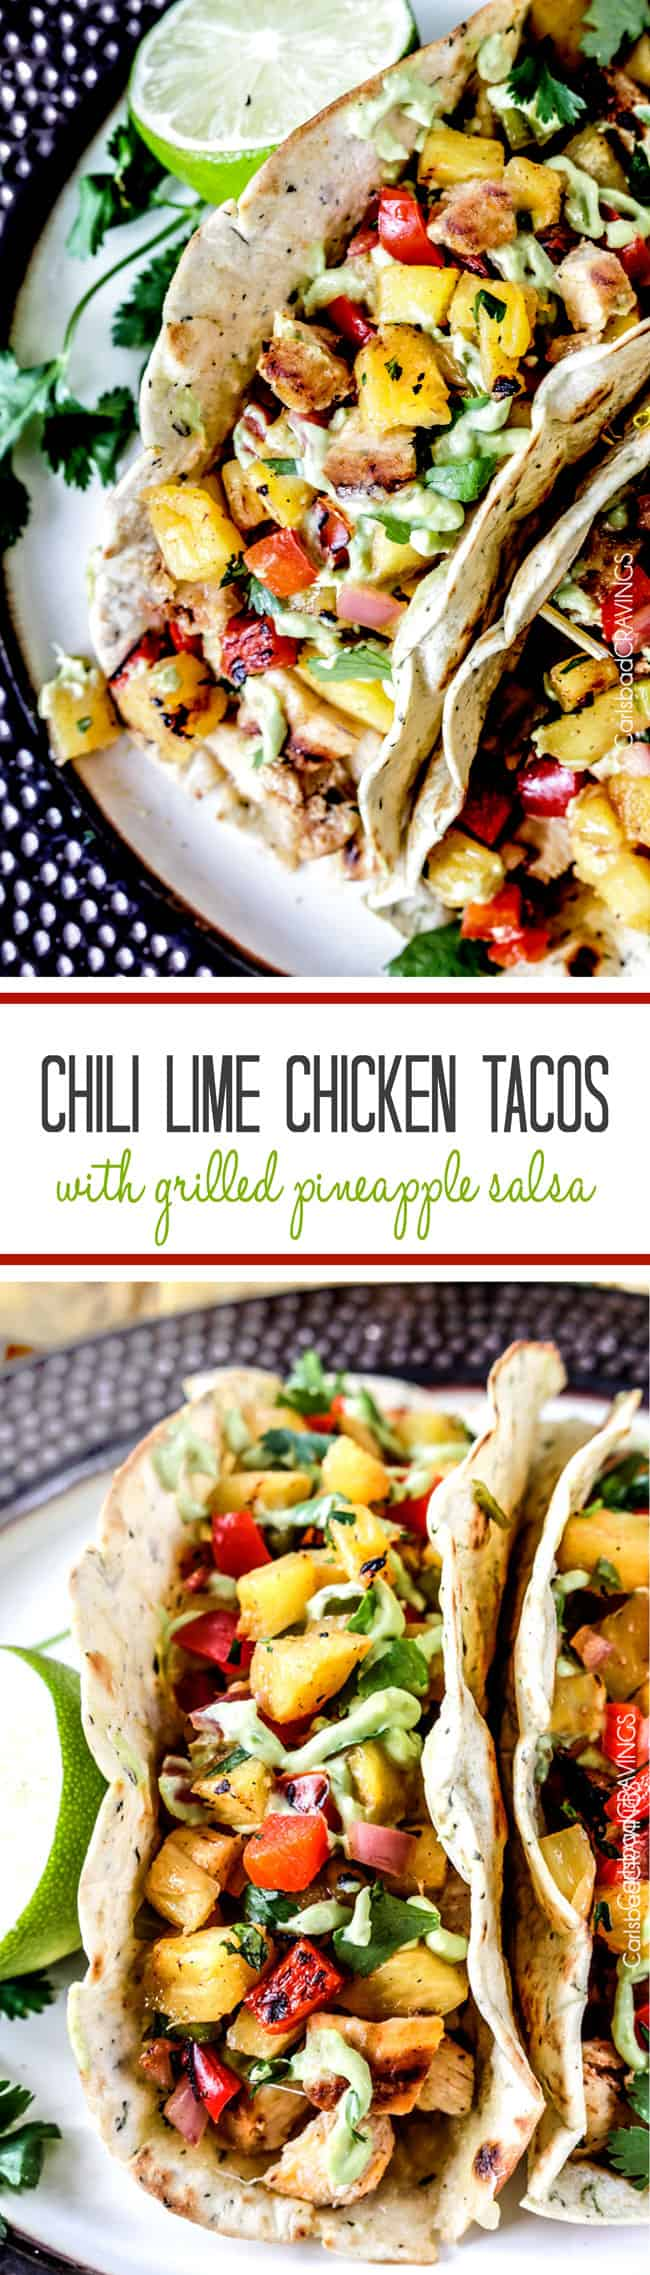 Chili Lime Chicken Tacos with Grilled Pineapple Salsa ...